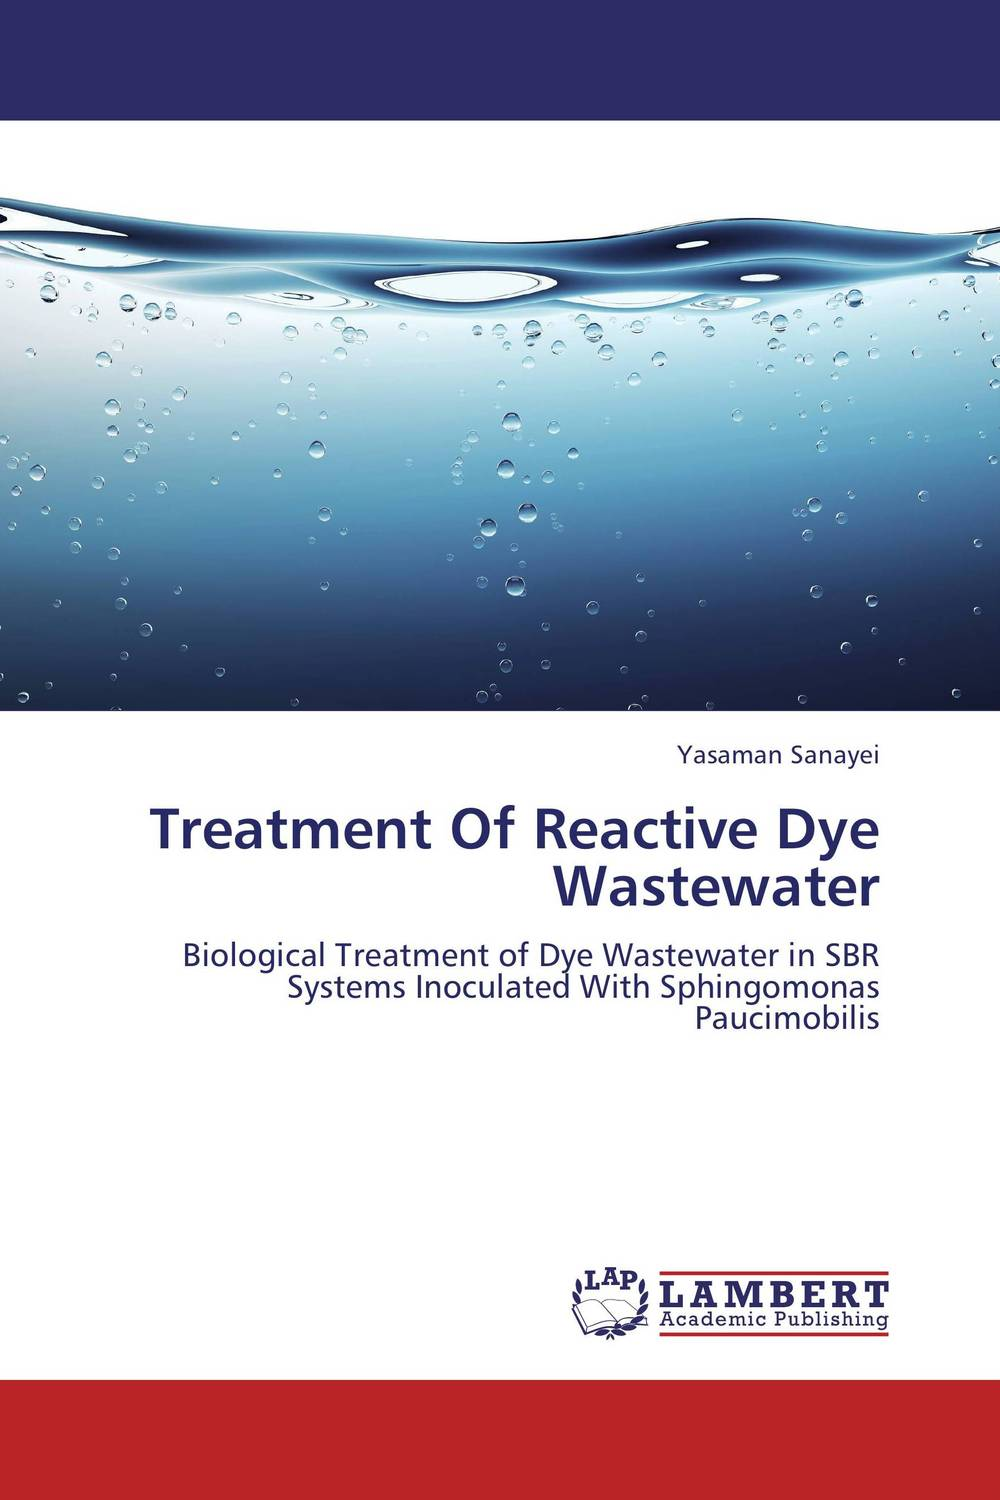 Treatment Of Reactive Dye Wastewater imperfectly stirred reactor modelling of recirculating reactive flows